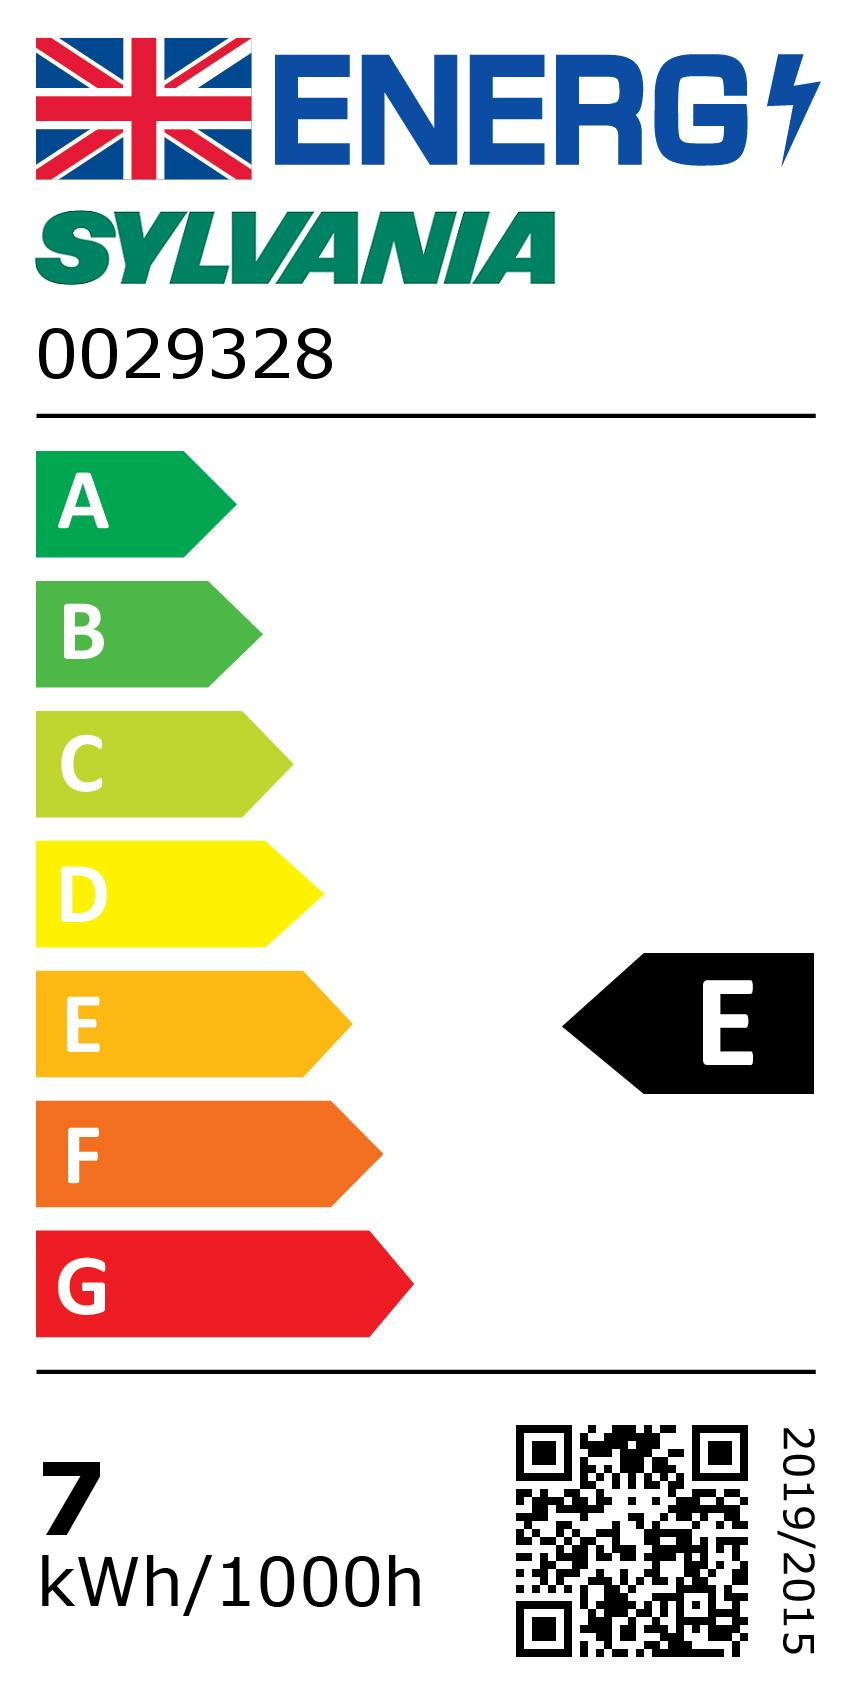 Energy Label for 0029328